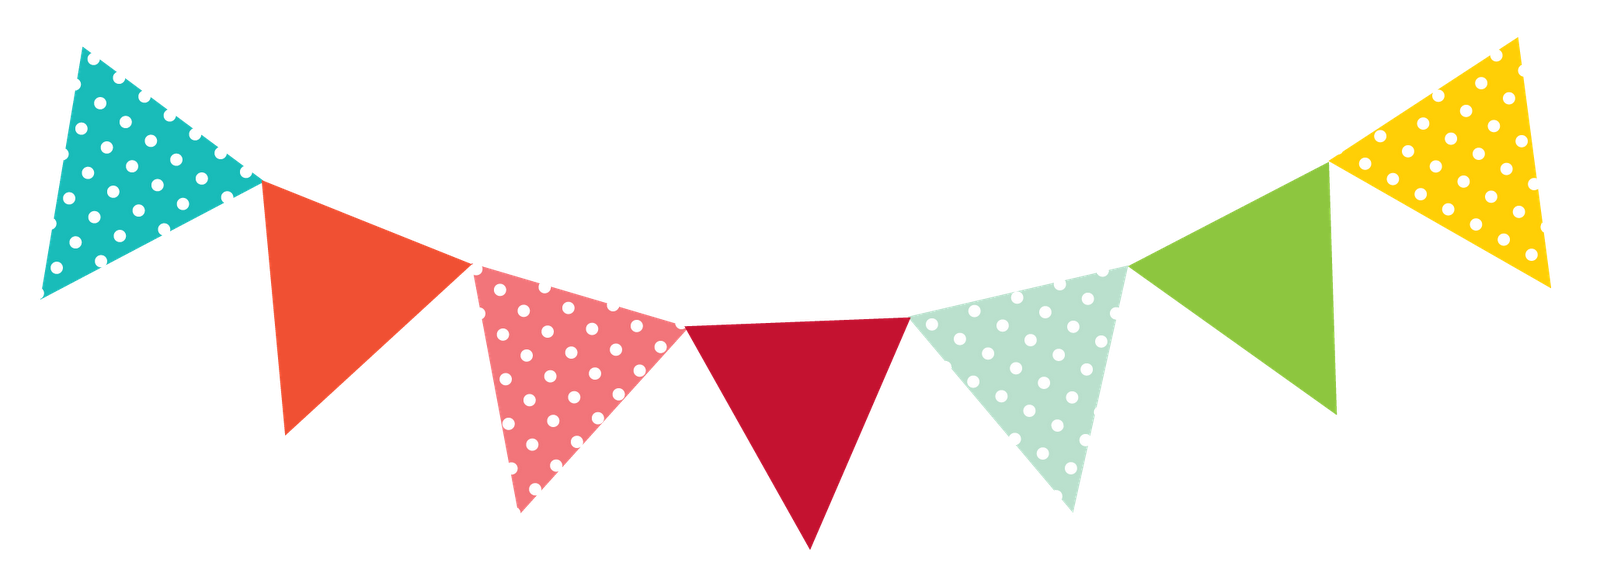 Bunting Clipart - Clipart Kid